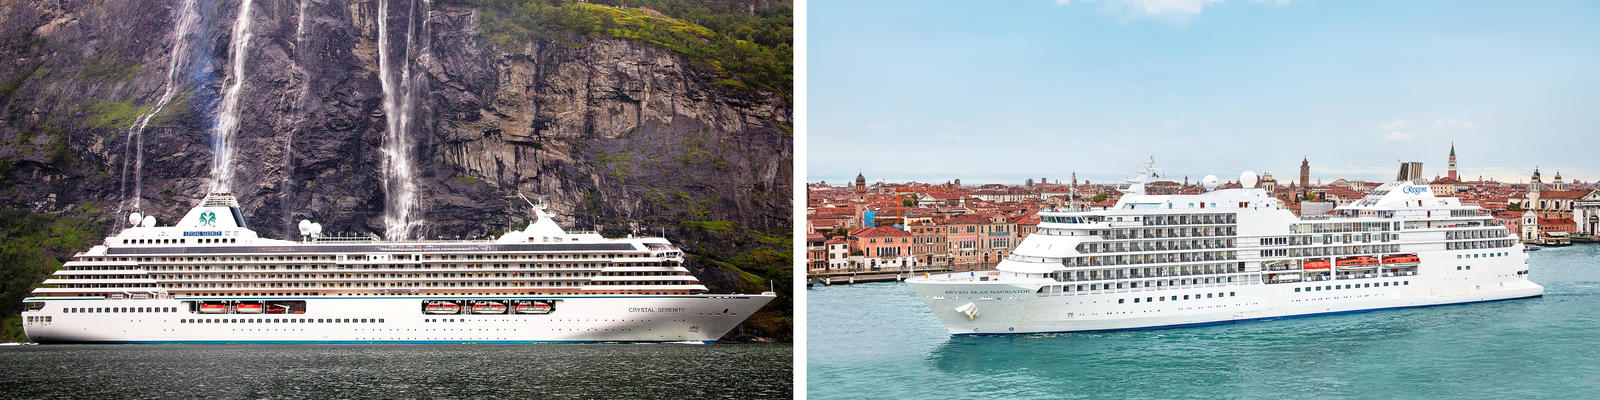 Crystal Cruises vs. Regent Seven Seas Cruises (Photo: Crystal & Regent Seven Seas)